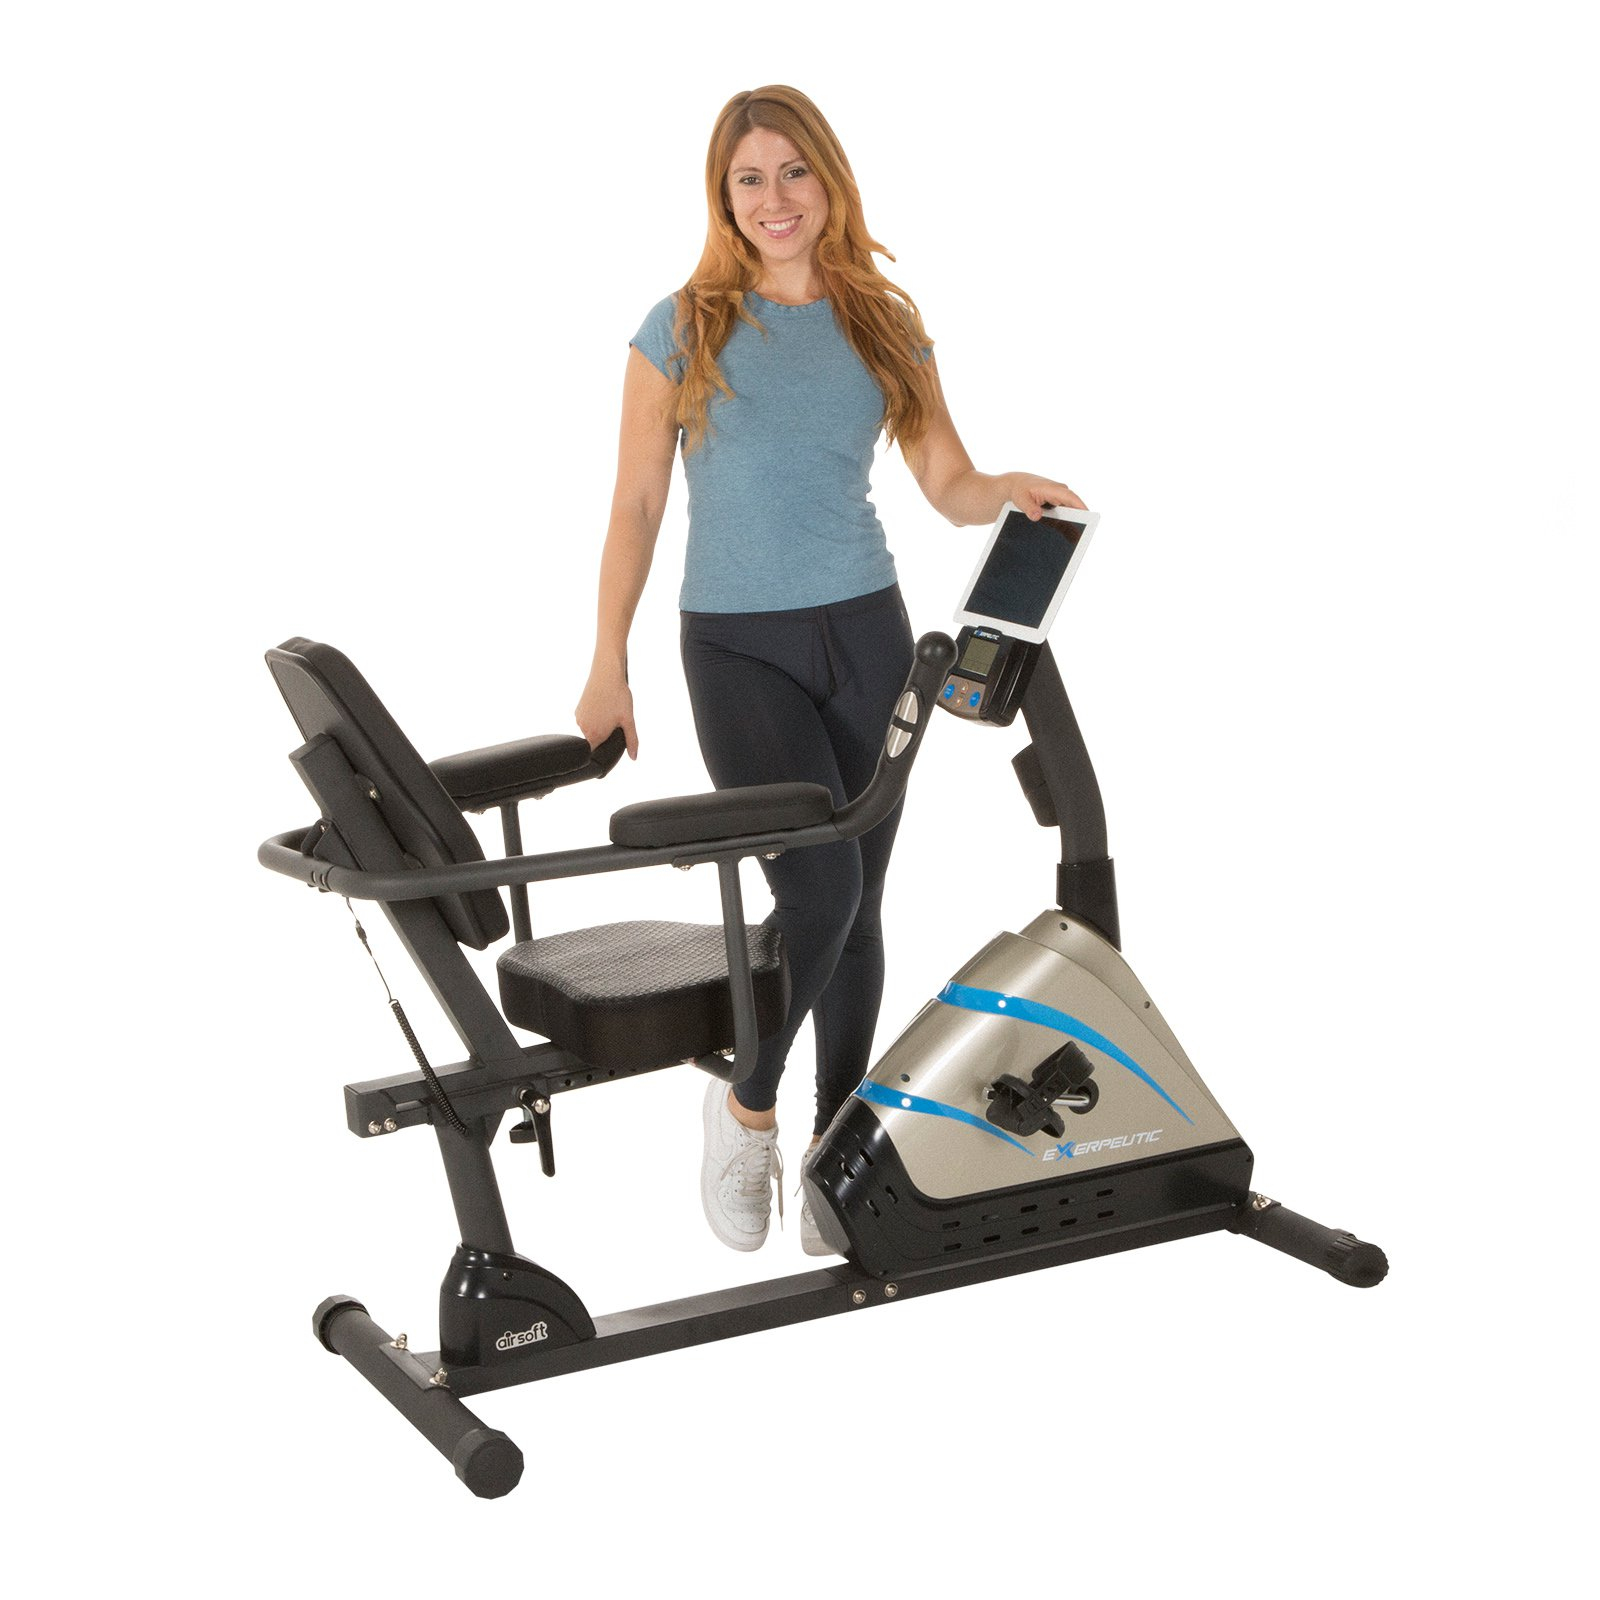 EXERPEUTIC 2000 High Capacity Programmable Magnetic Recumbent Bike with Heart Pulse Sensors